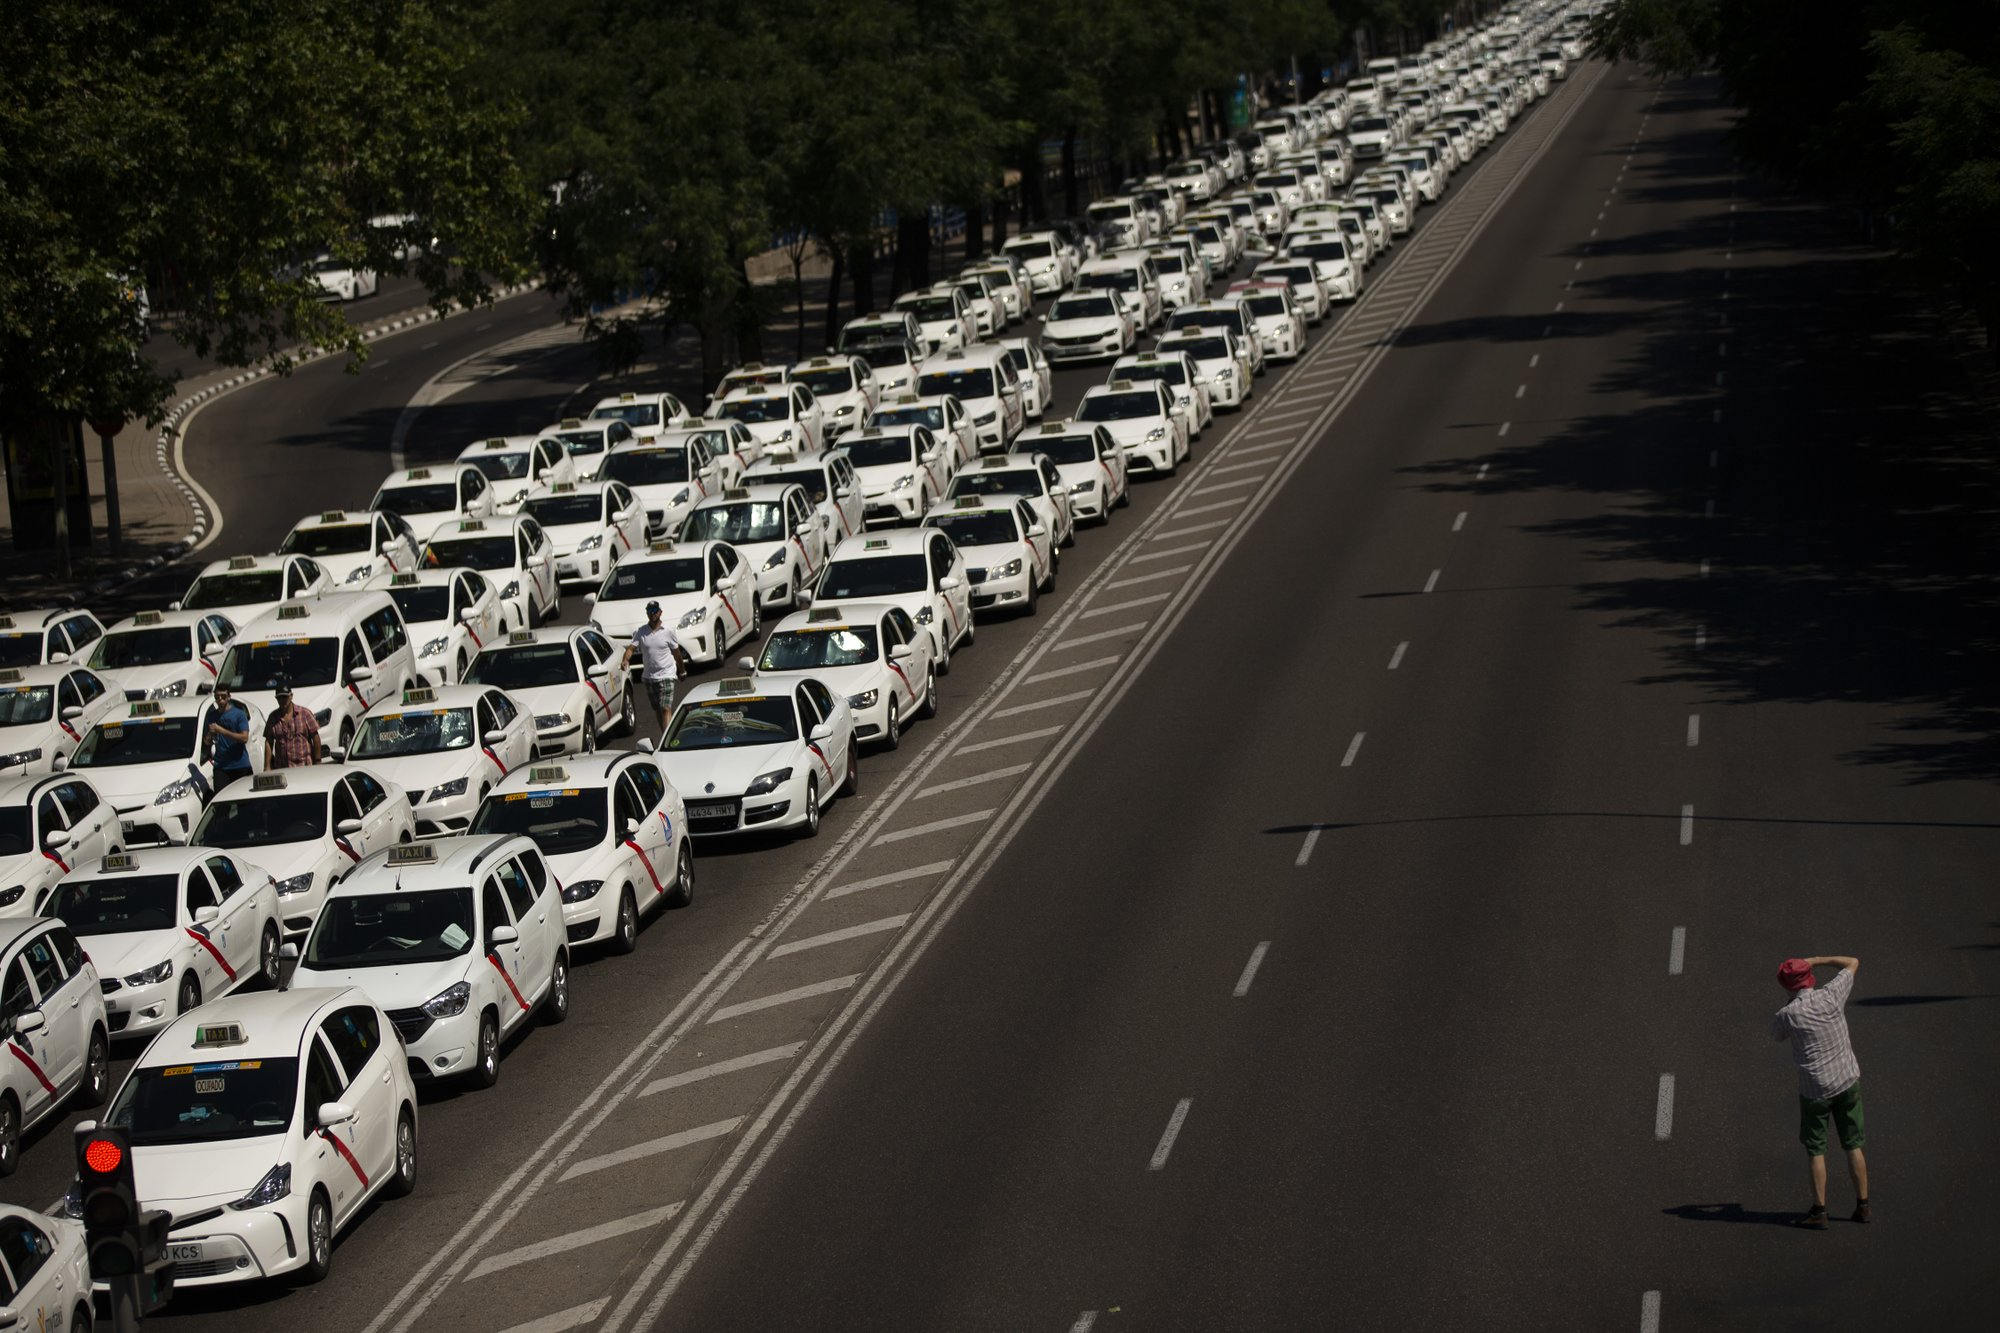 Spain: Taxi drivers block streets over ride-hailing services